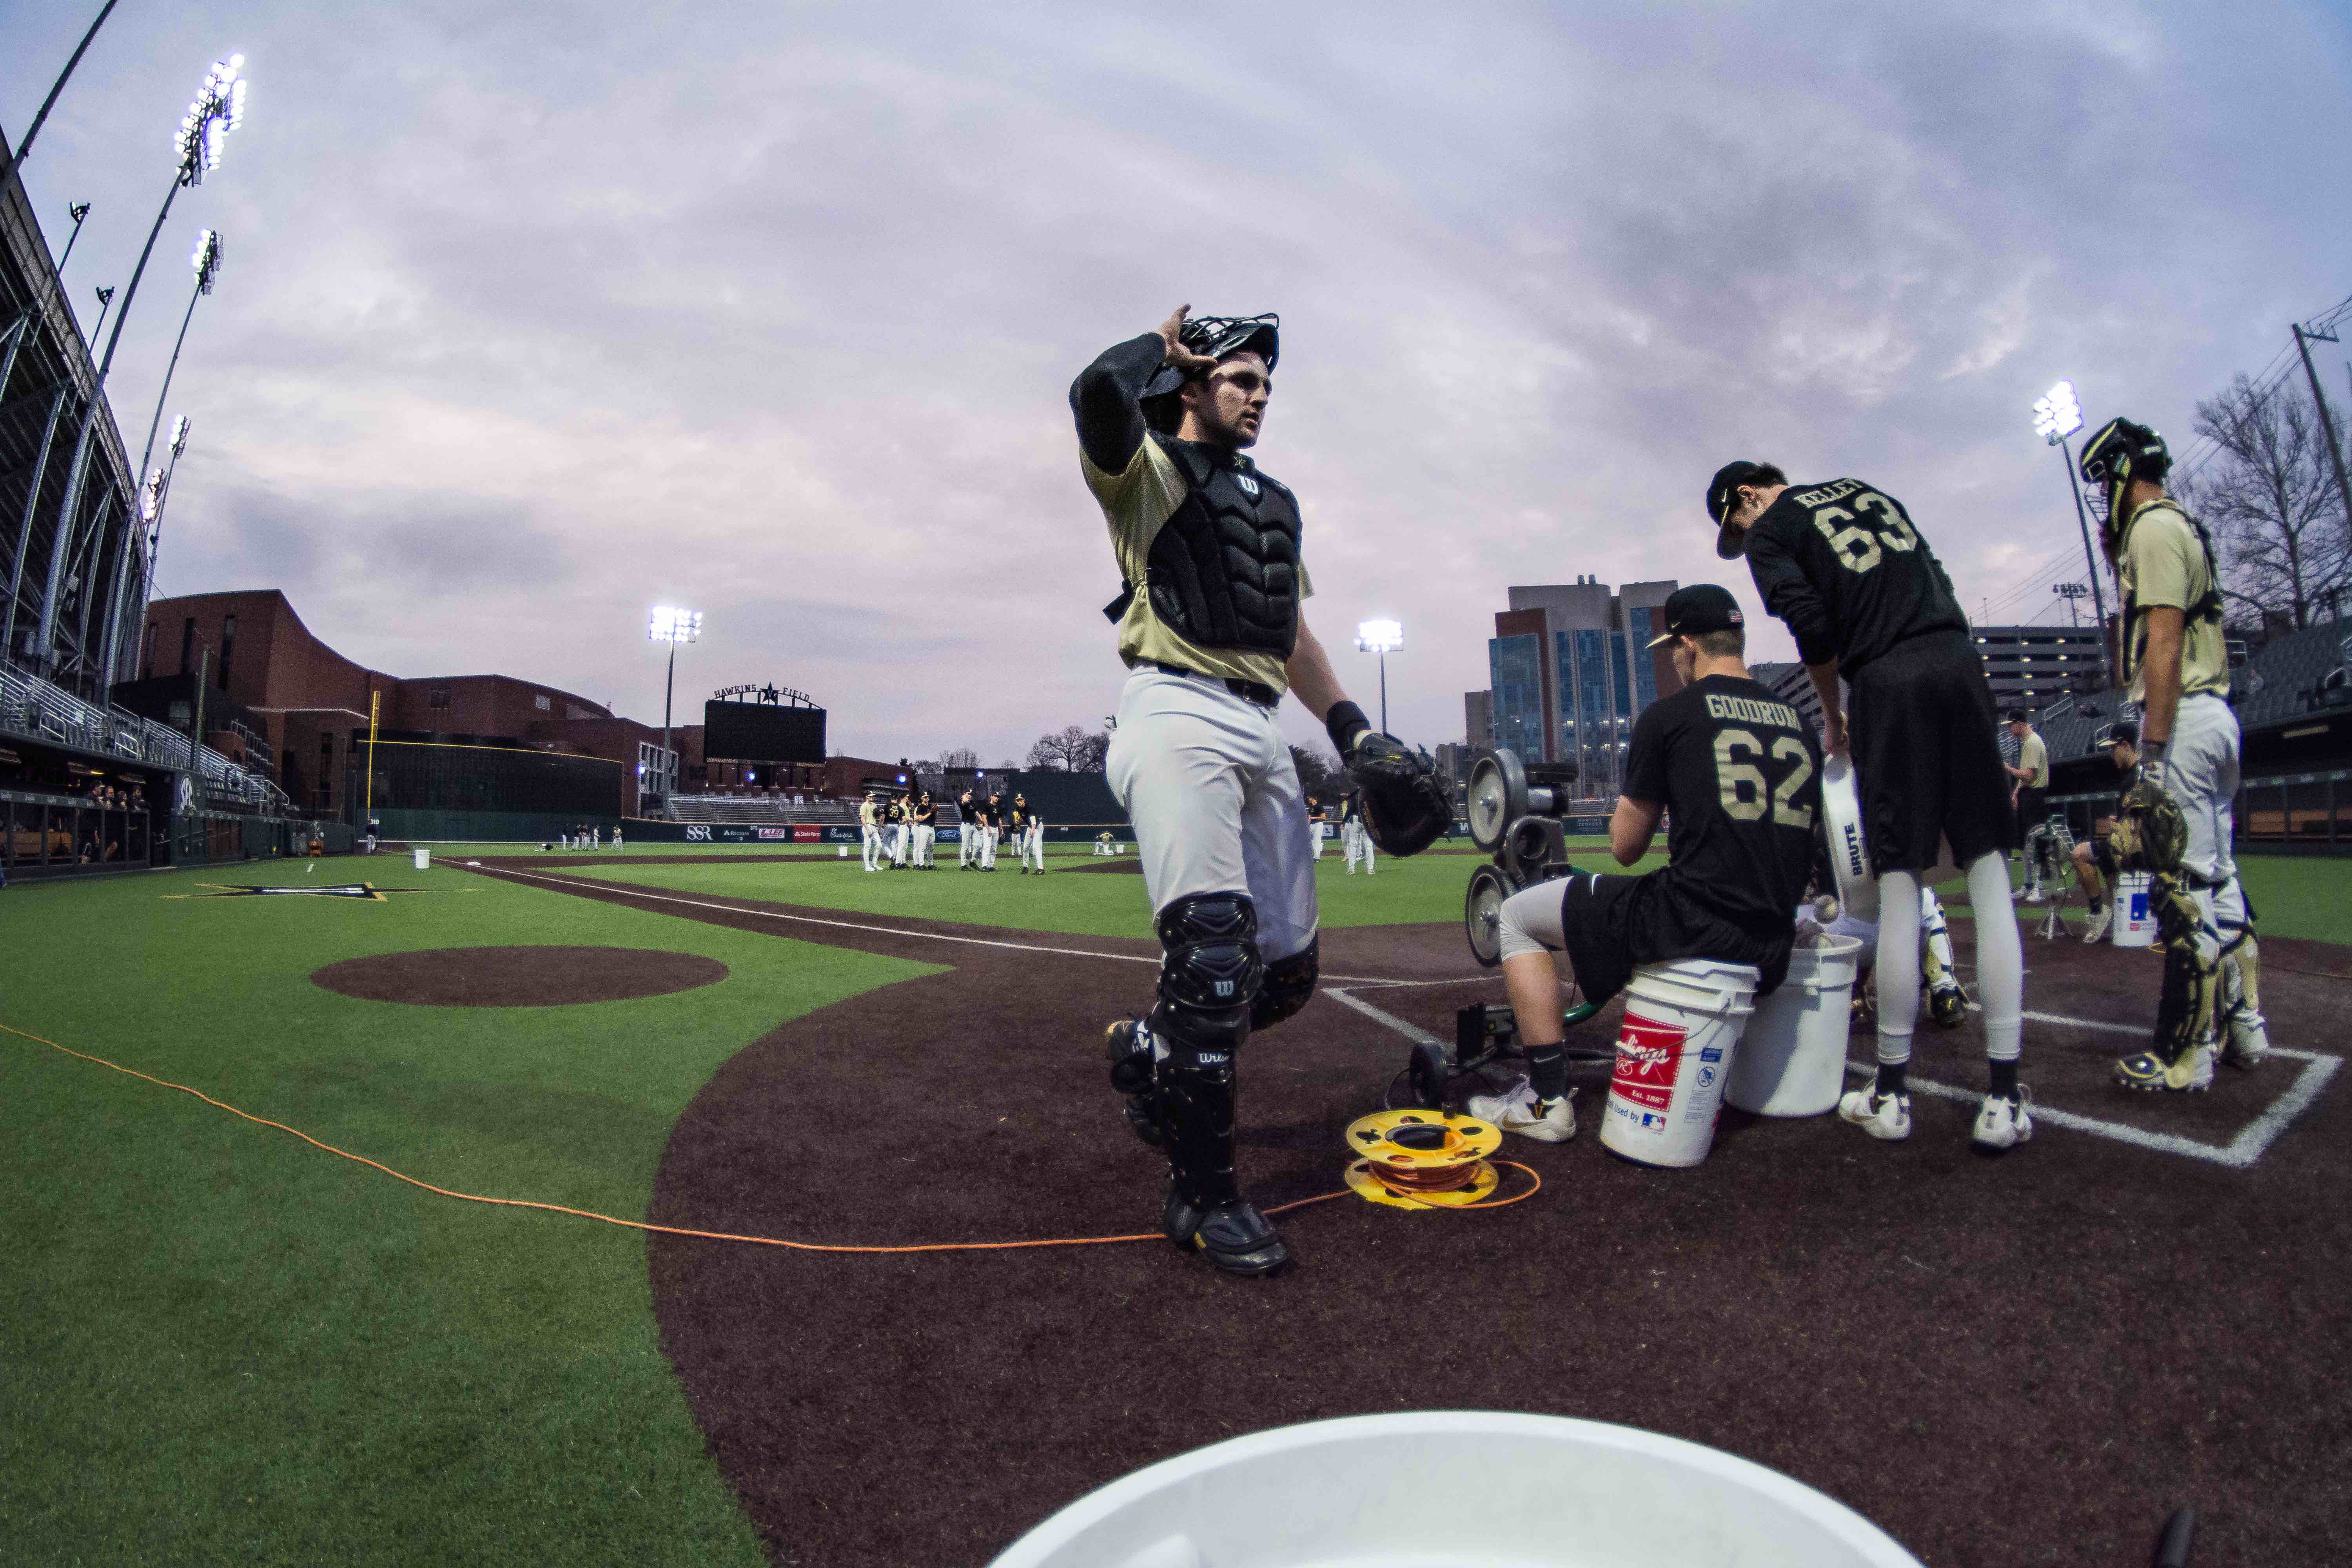 Keegan, Rodriguez power Gold Team to win in opening game of Black and Gold Series